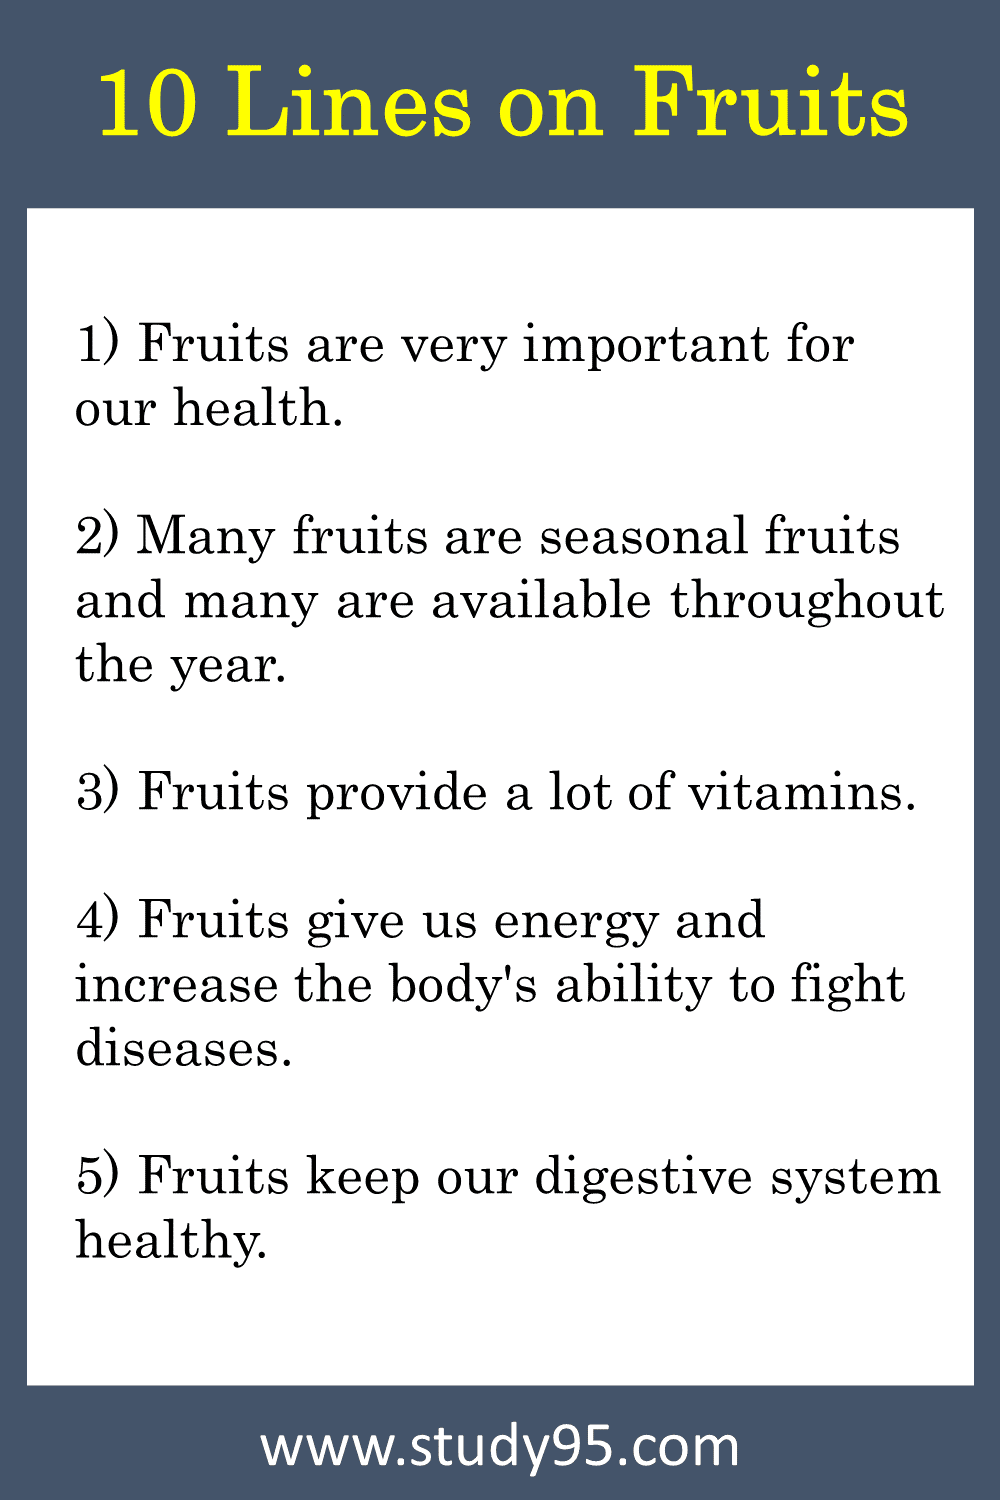 Lines on Fruits in English